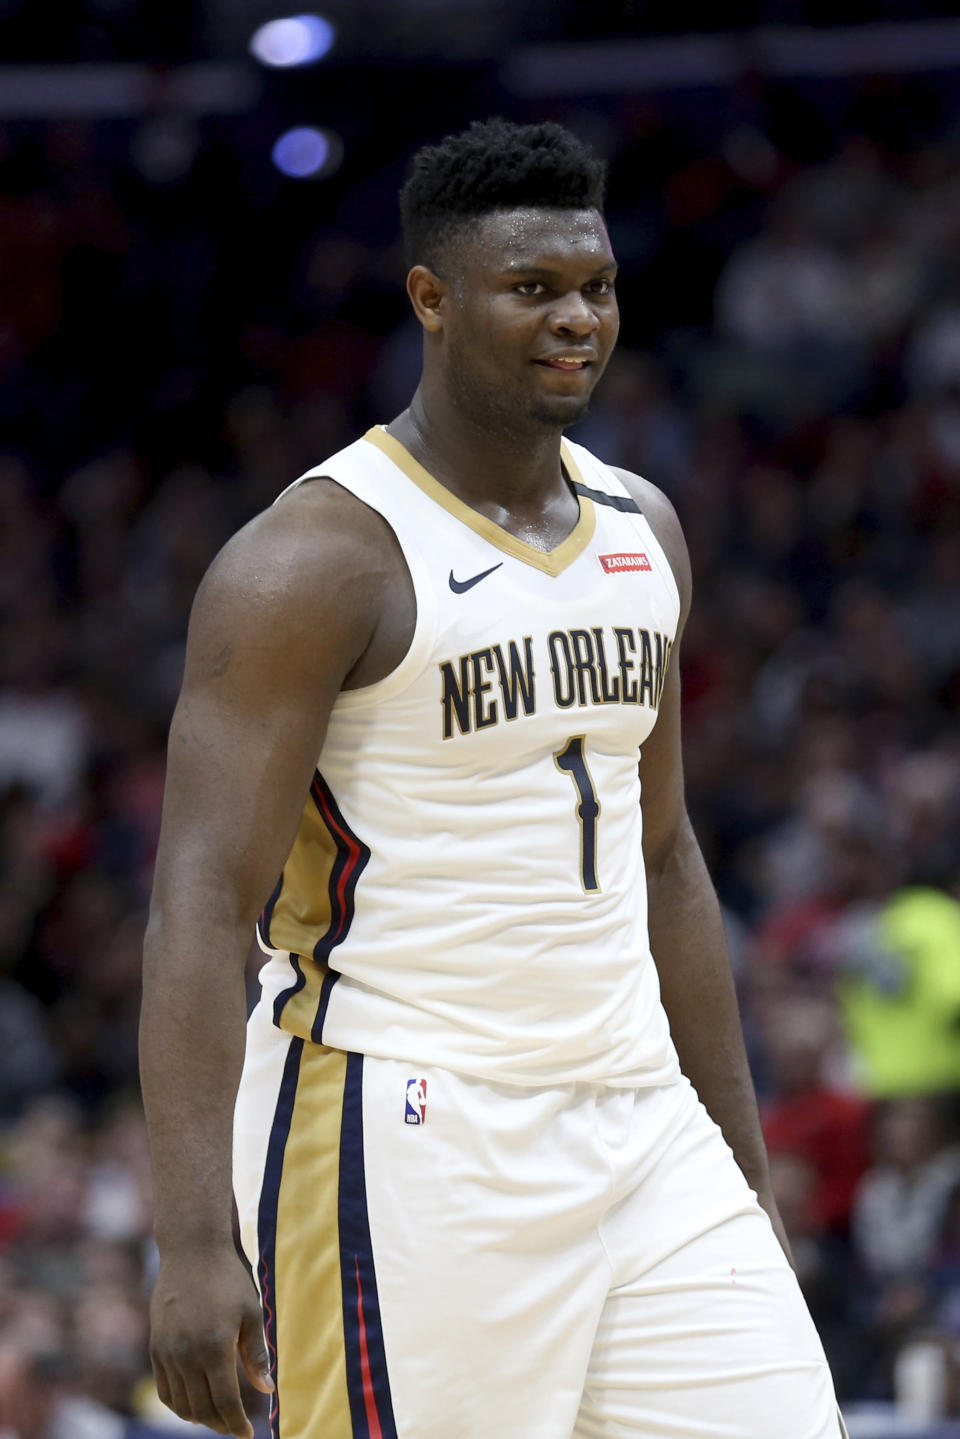 New Orleans Pelicans forward Zion Williamson (1) waits to shoot a free thrown in the second half of an NBA basketball game in New Orleans, Sunday, March 1, 2020. (AP Photo/Rusty Costanza)